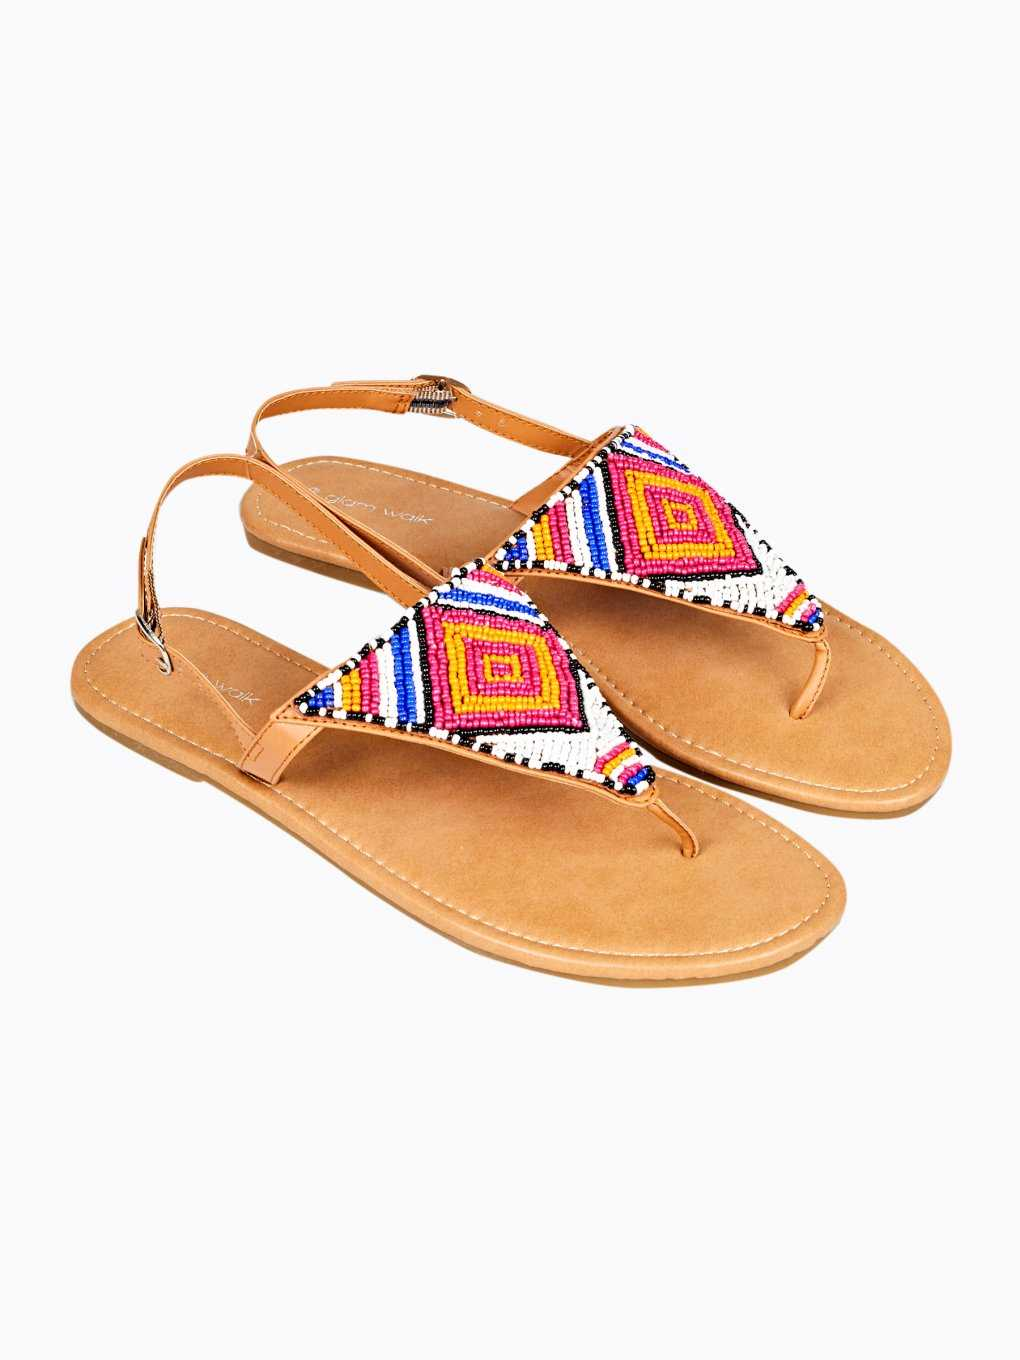 Flat sandals with beads